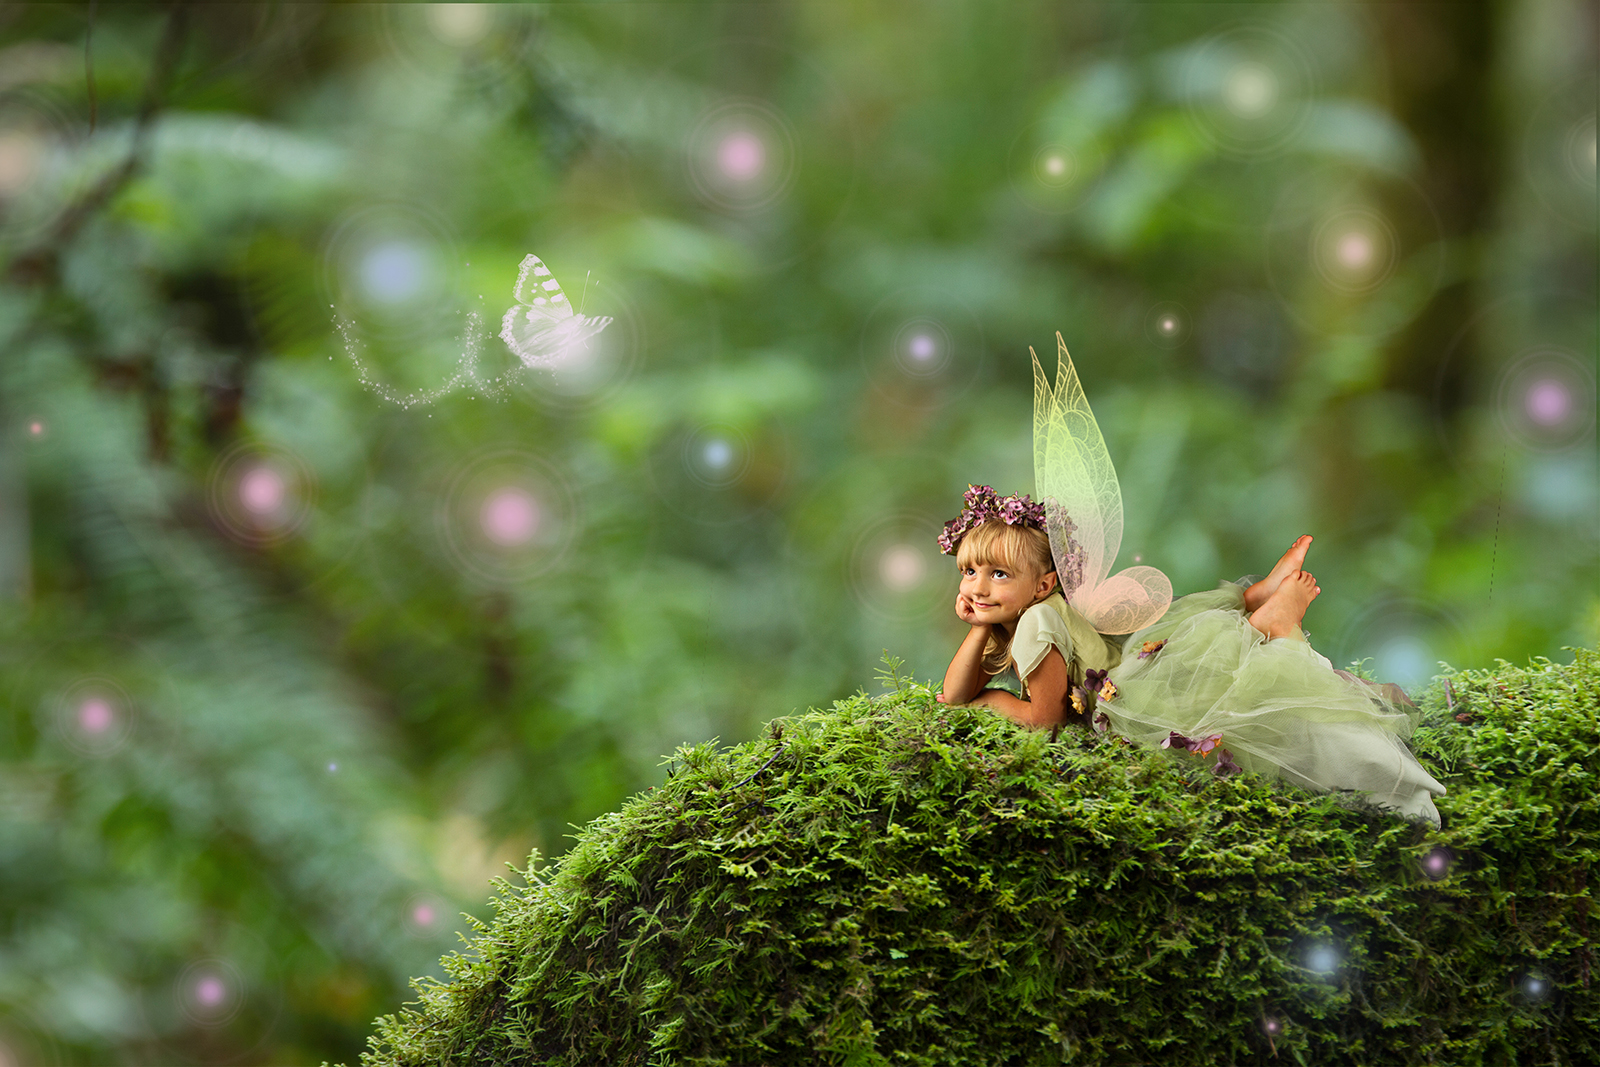 Mossy Green My Favorite Digital Backgrounds For Fairy Composite